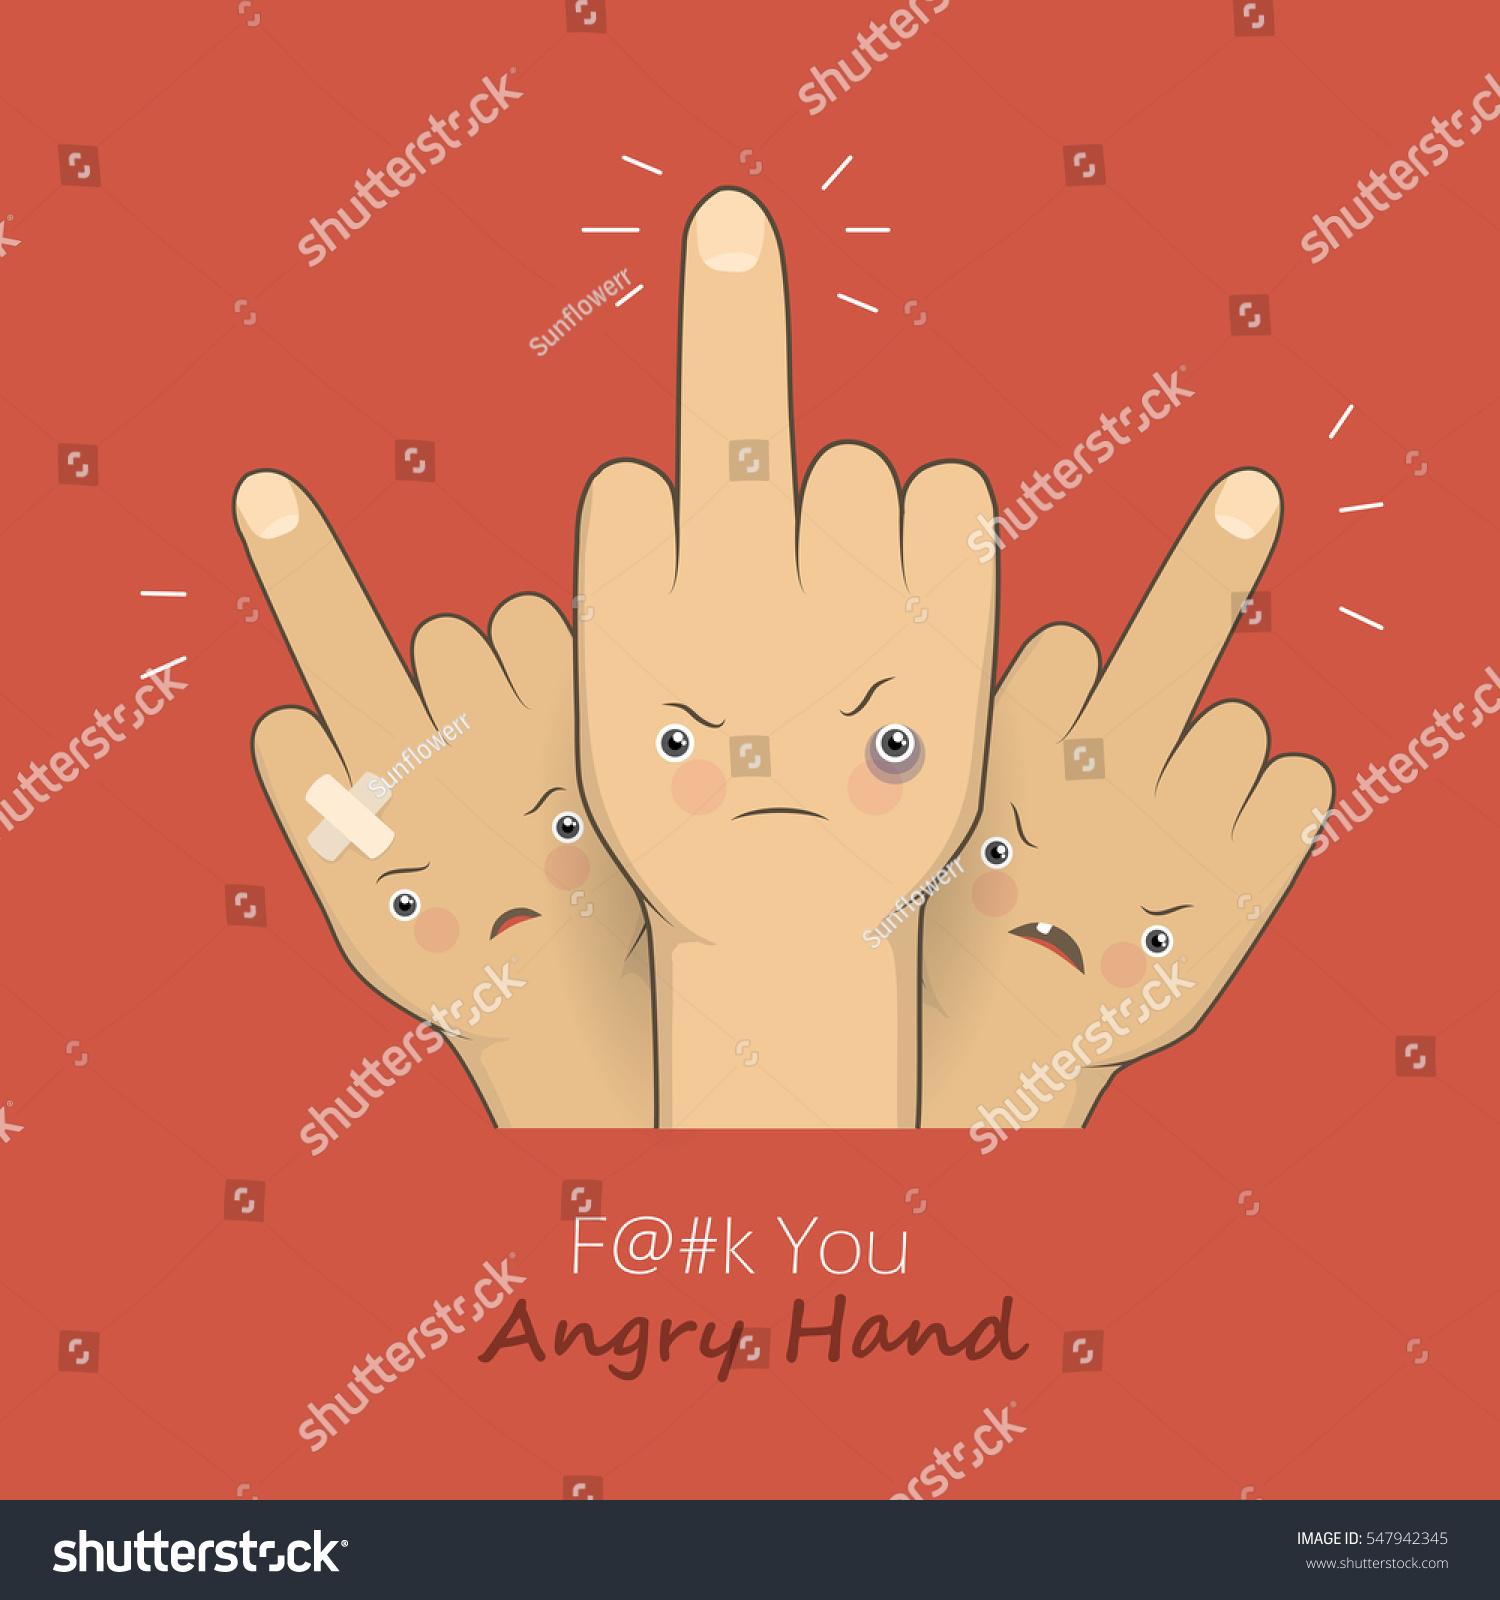 Cartoon middle finger angry emotion faces stock illustration cartoon middle finger with angry emotion faces provocation gesture symbol expression rudeness concept illustration buycottarizona